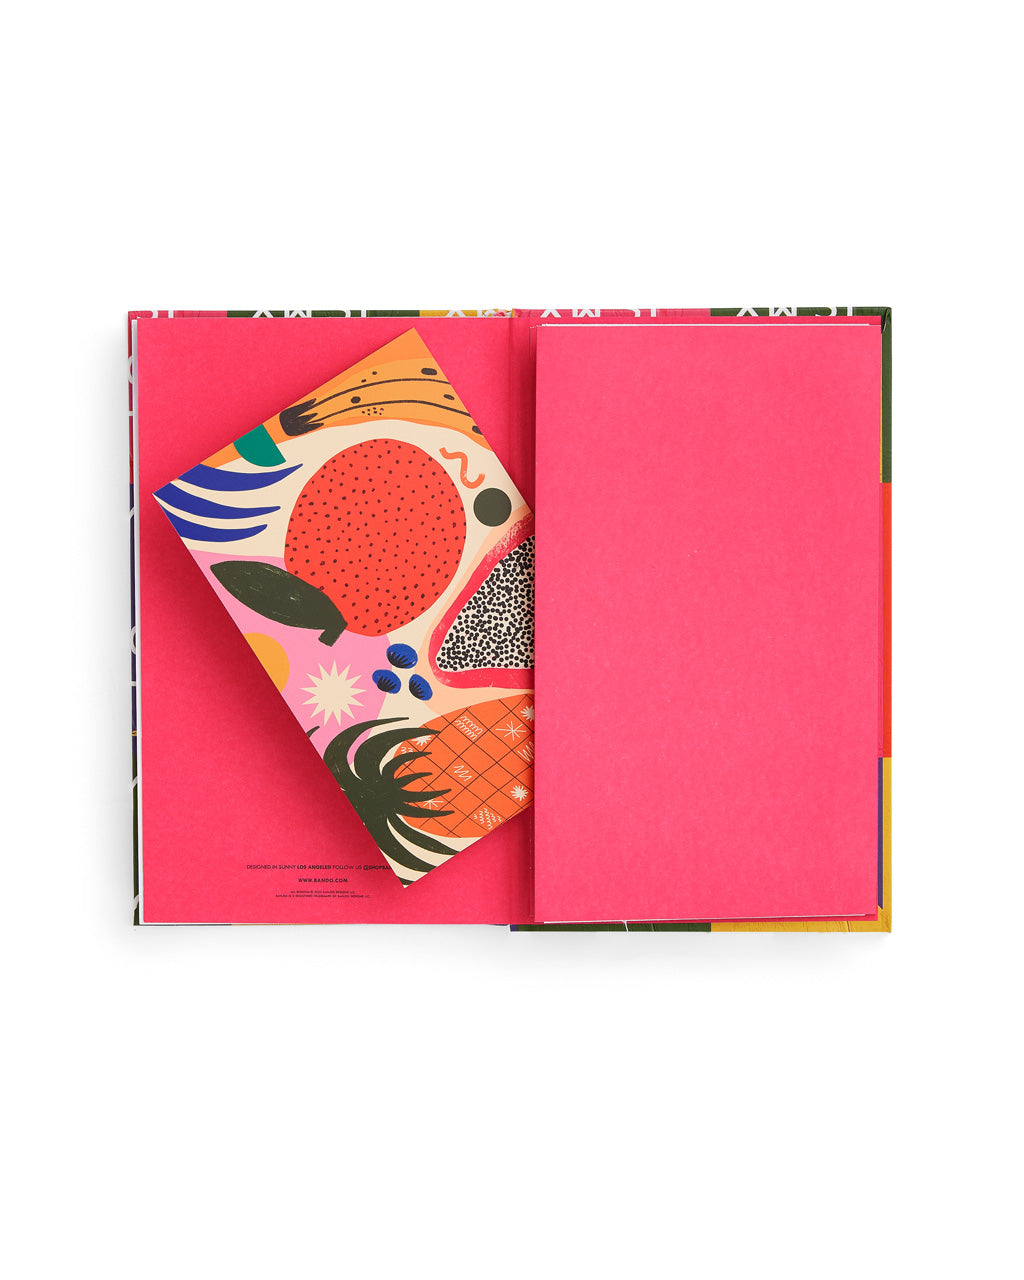 interior image of classic planner featuring a bright pink end sheet and a pocket